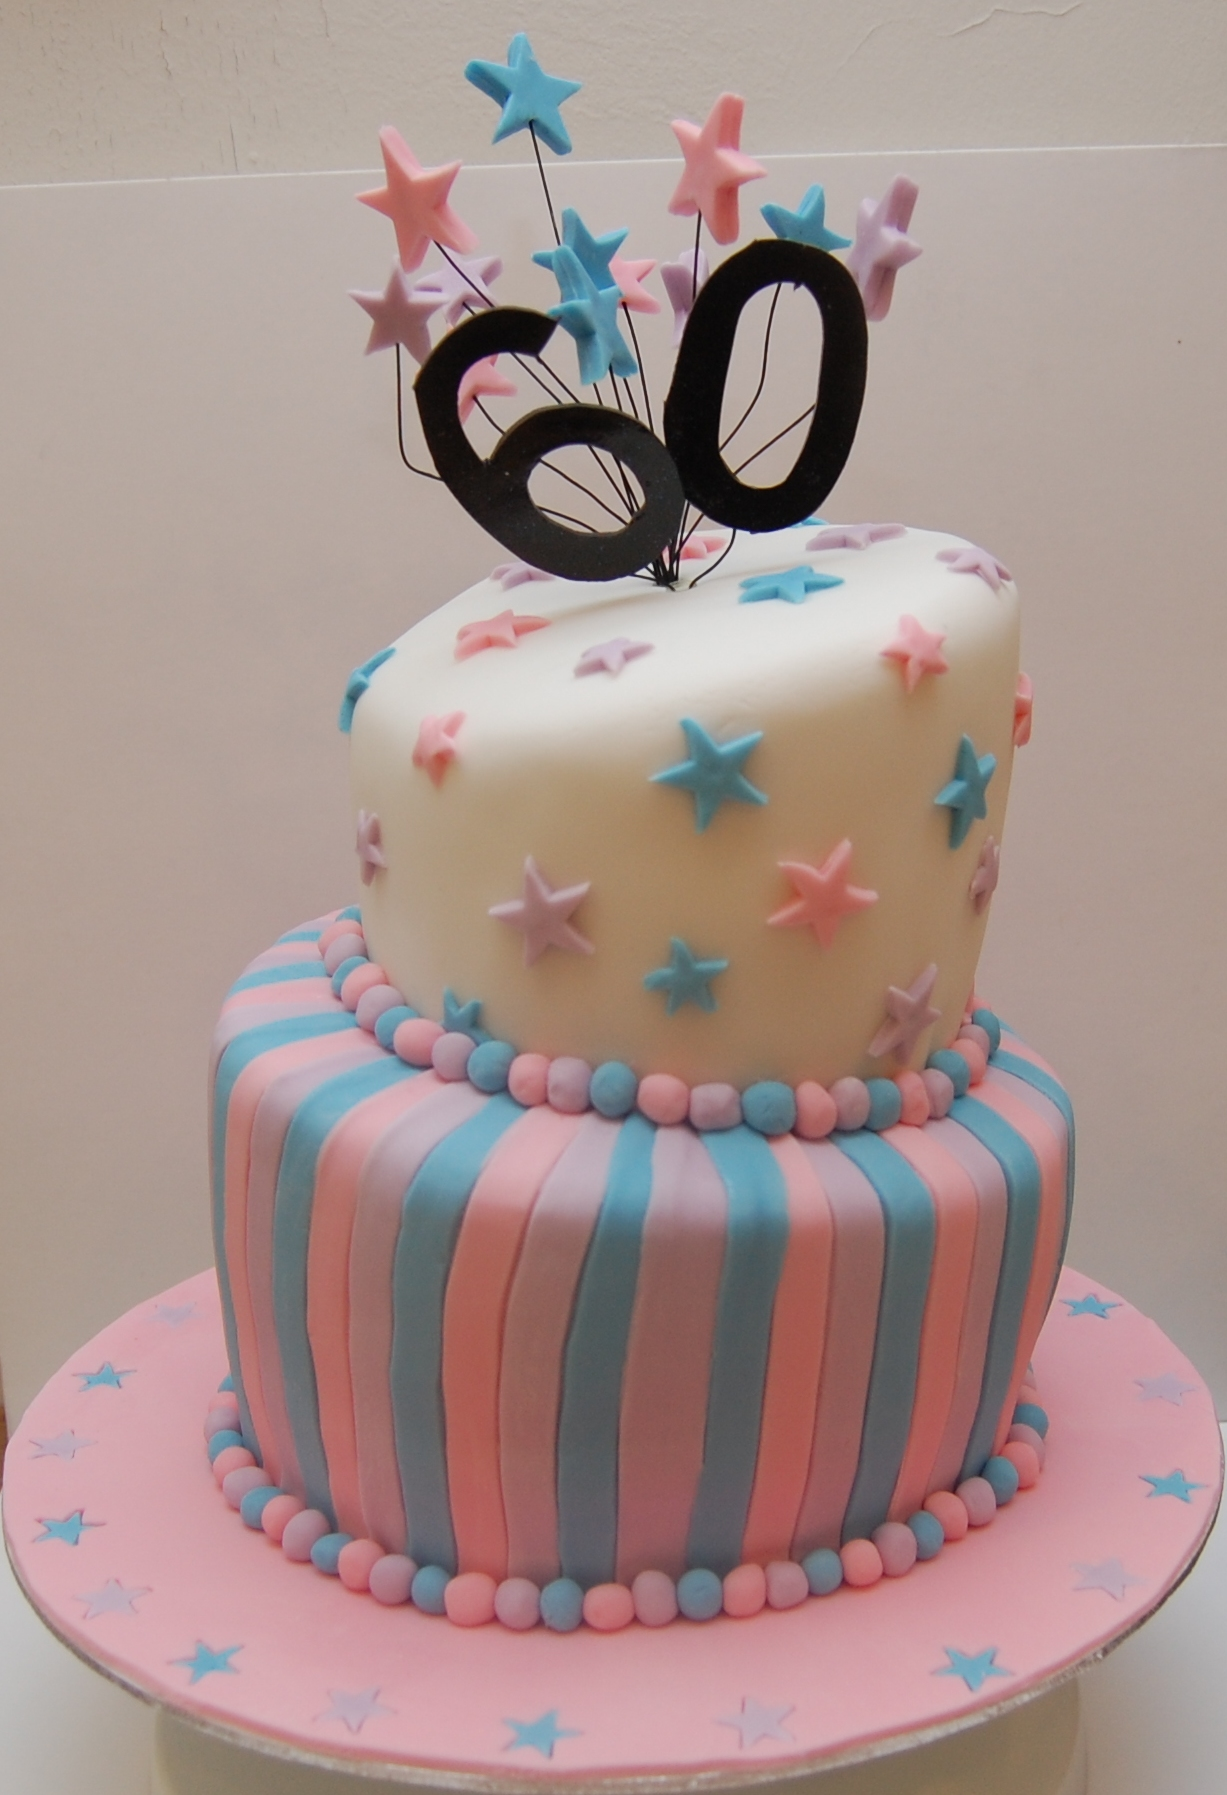 Cakes For Grown Ups